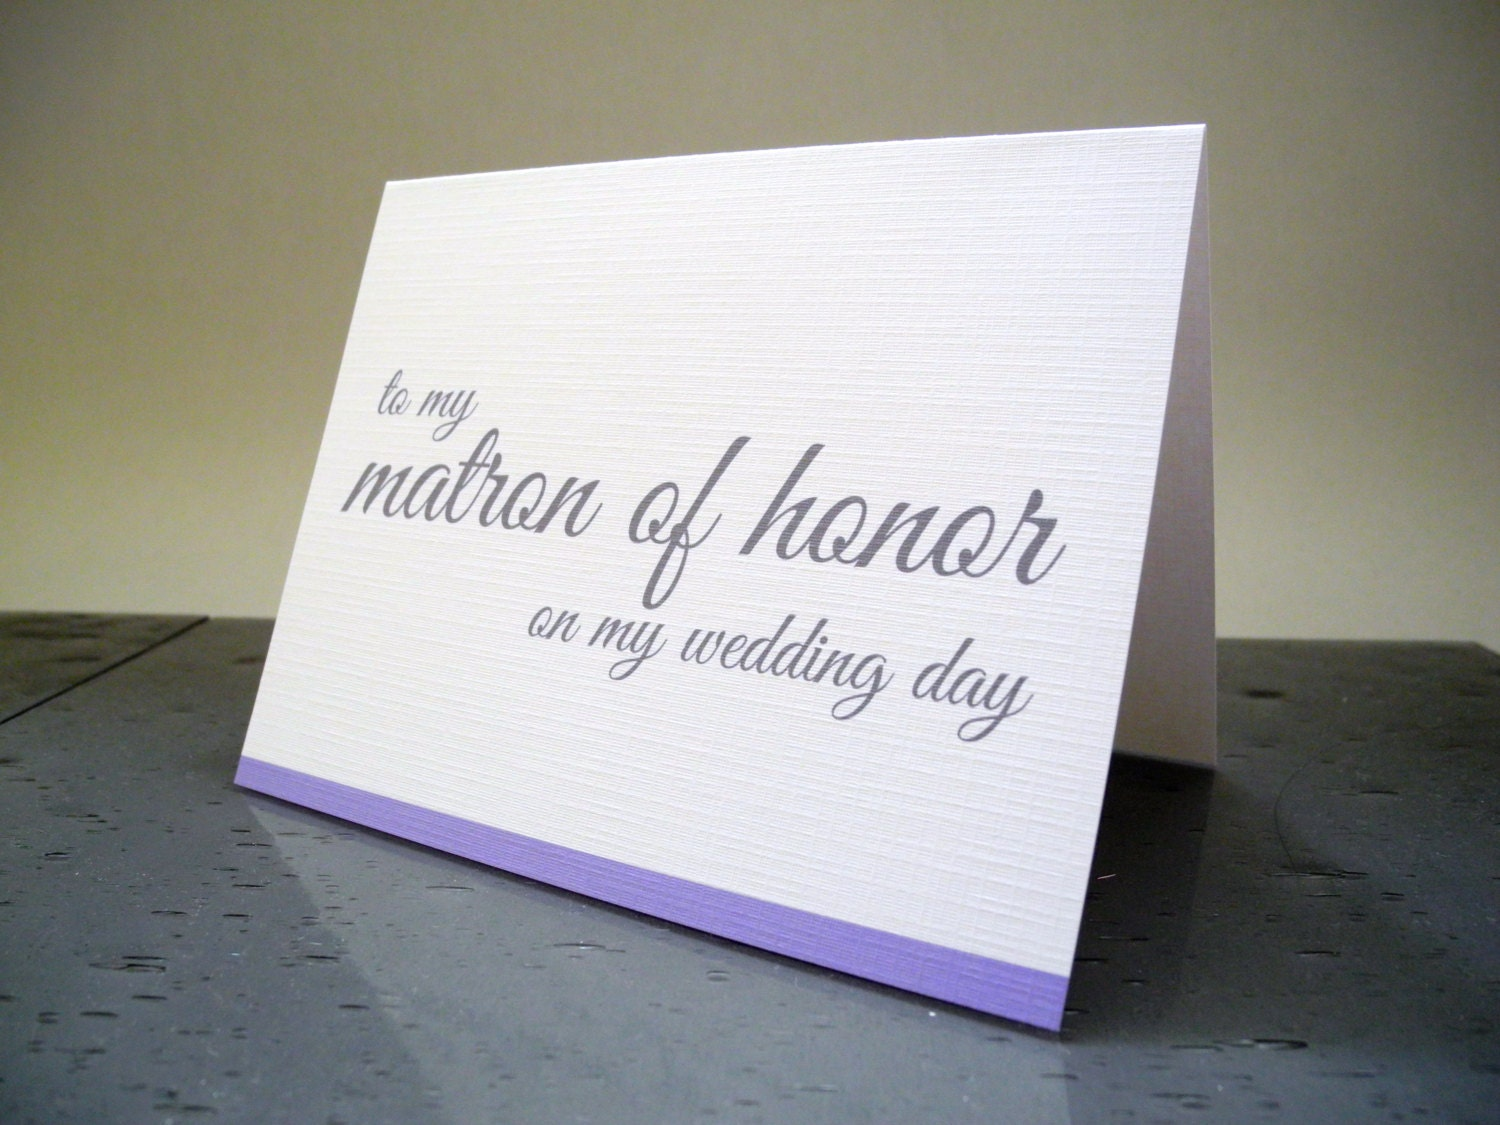 Honor Or Honour On Wedding Invitations: To My Matron Of Honor Wedding Cards Bridal By TheWhiteInvite